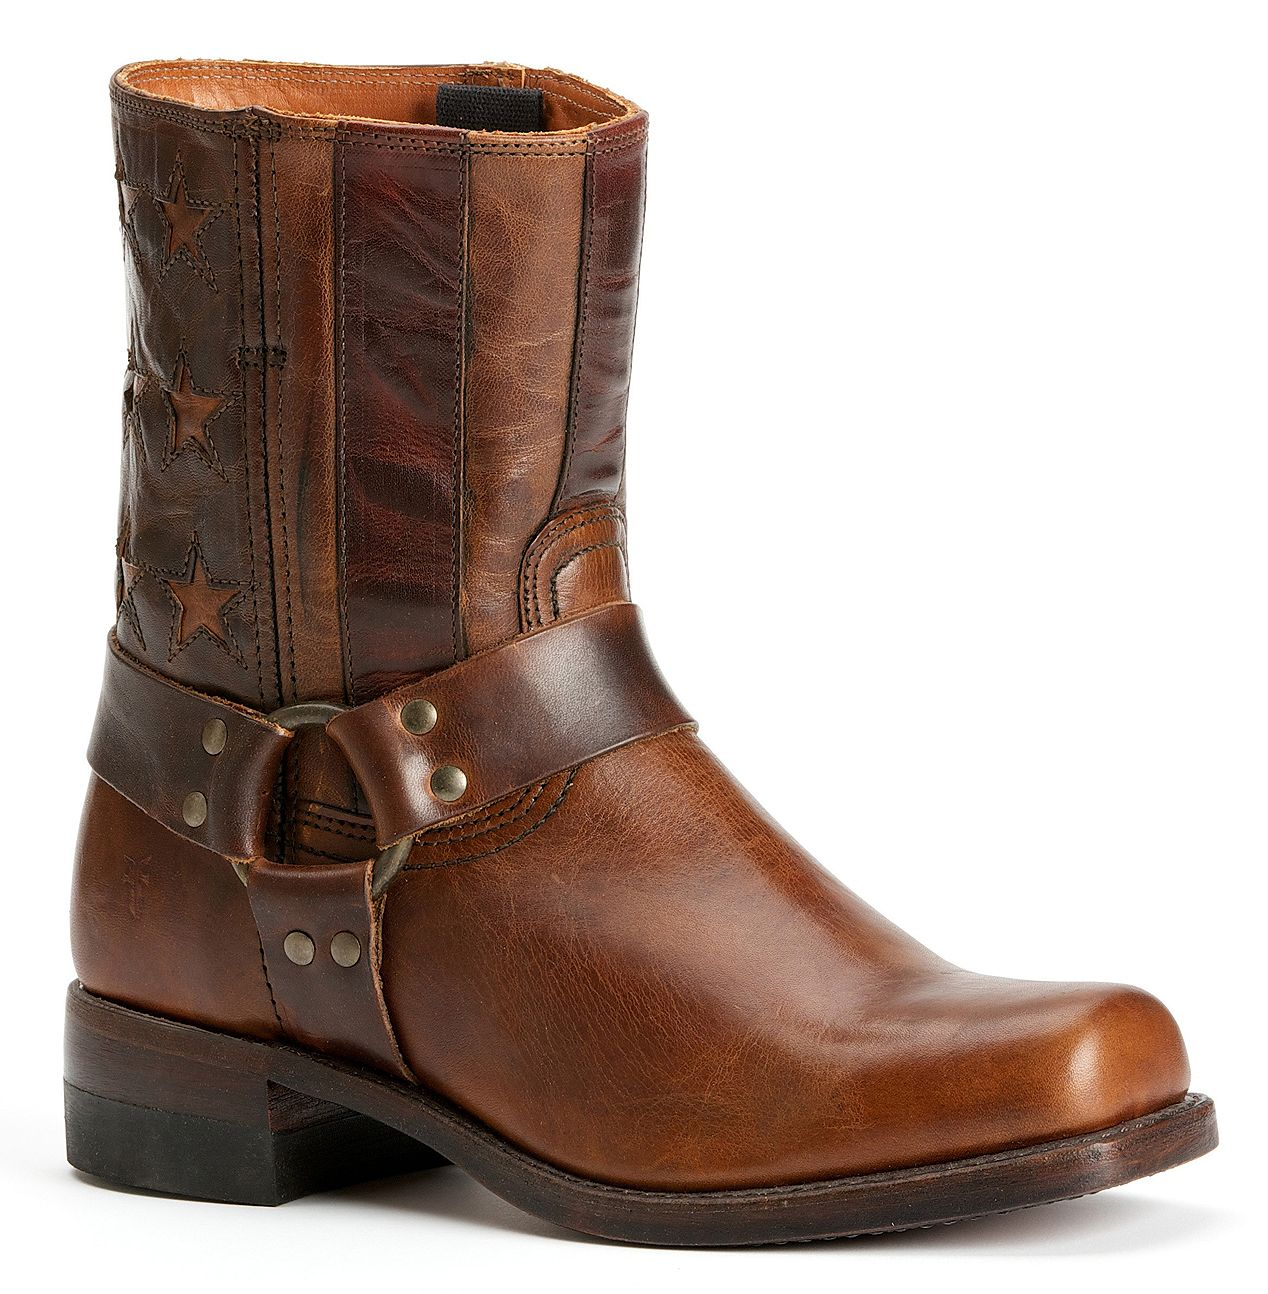 Men's cowboy boots from top brands including Ariat, Justin Boots, Durango, Lucchese, Twisted X and Dan Post are ready to ship at downiloadojg.gq - where you .